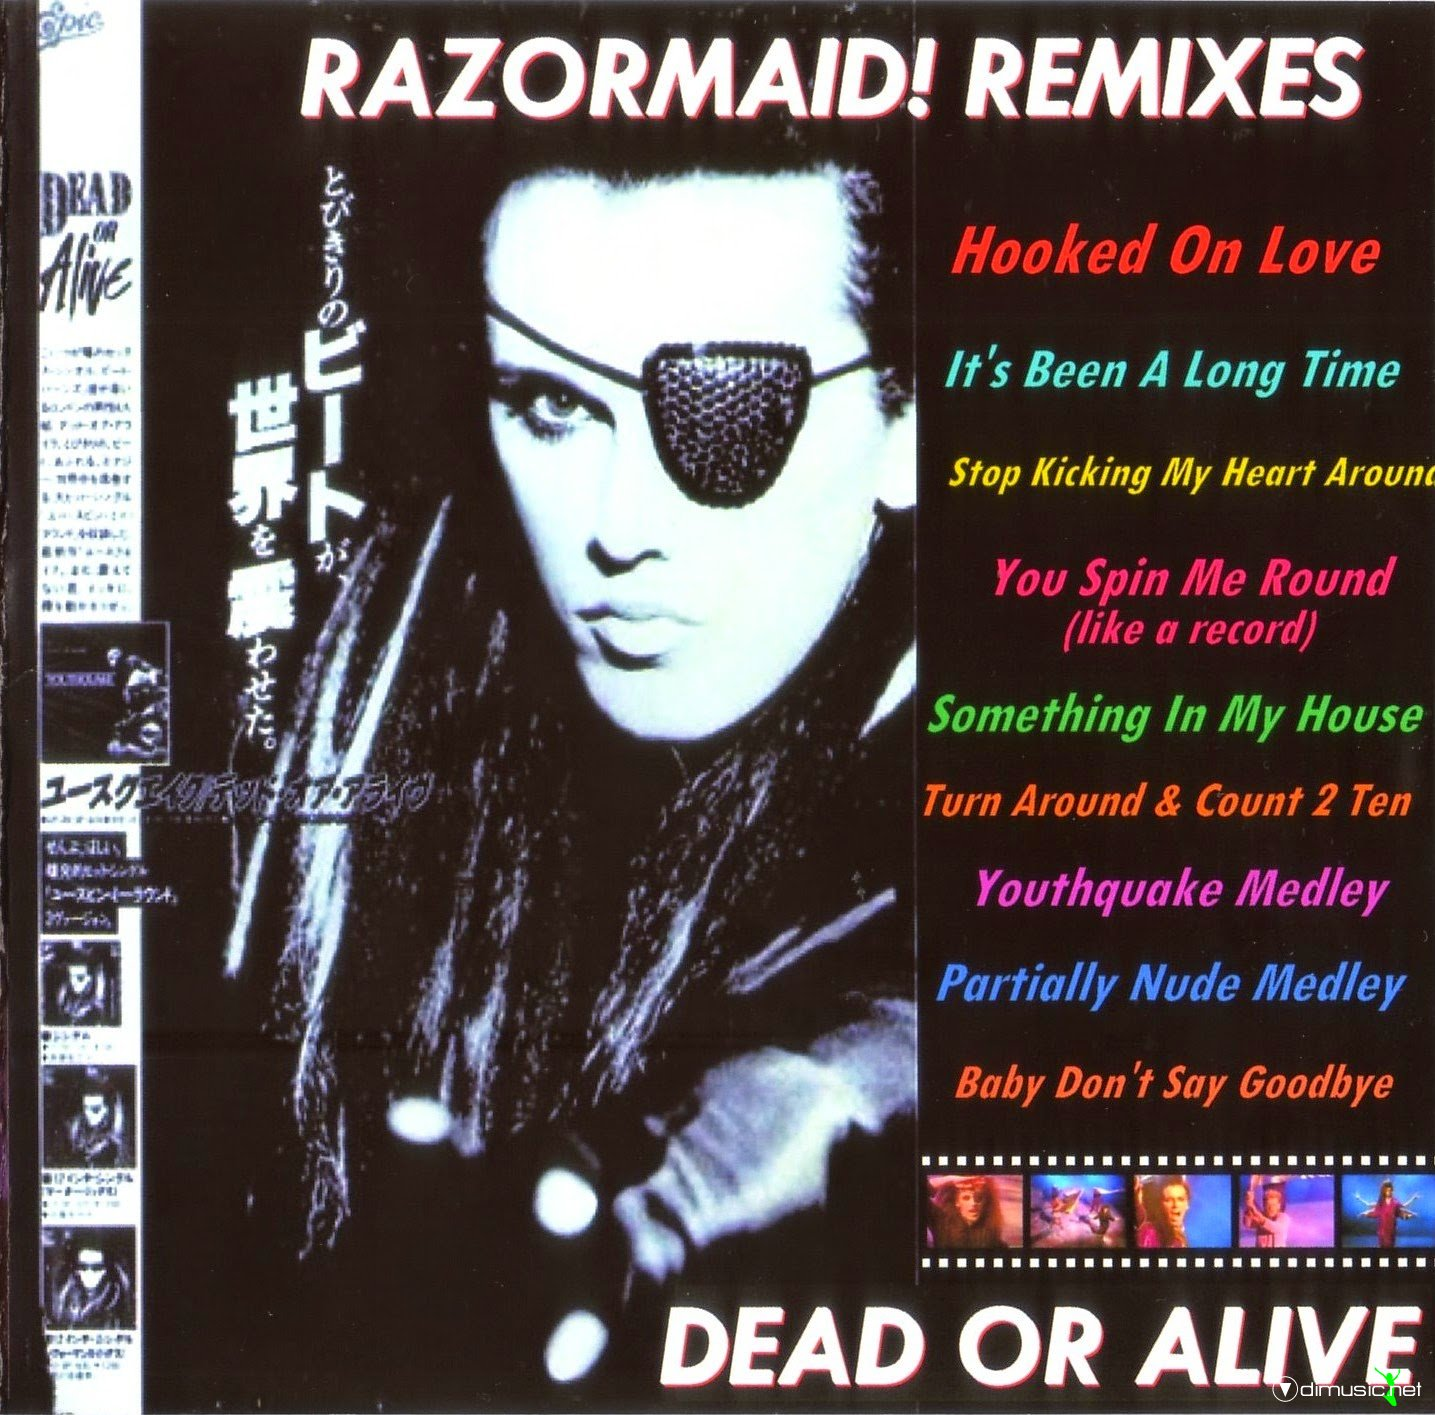 Dead or alive razormaid remixes album at odimusic for House remixes of classic songs